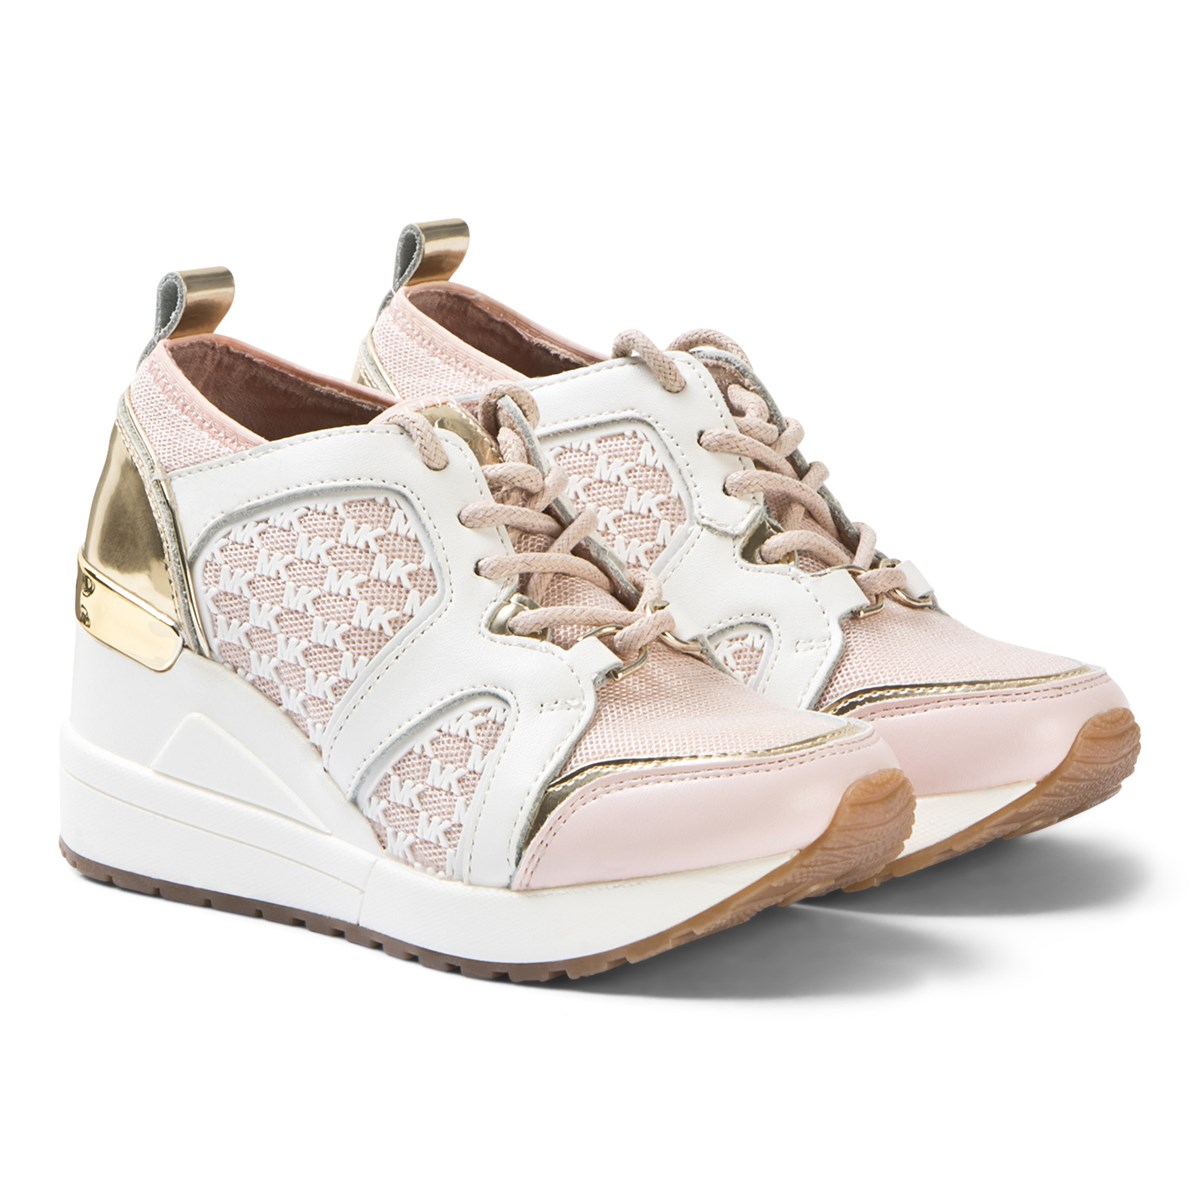 e6465c225123 Michael Kors - Wedge Sneakers Pink and White - Babyshop.com